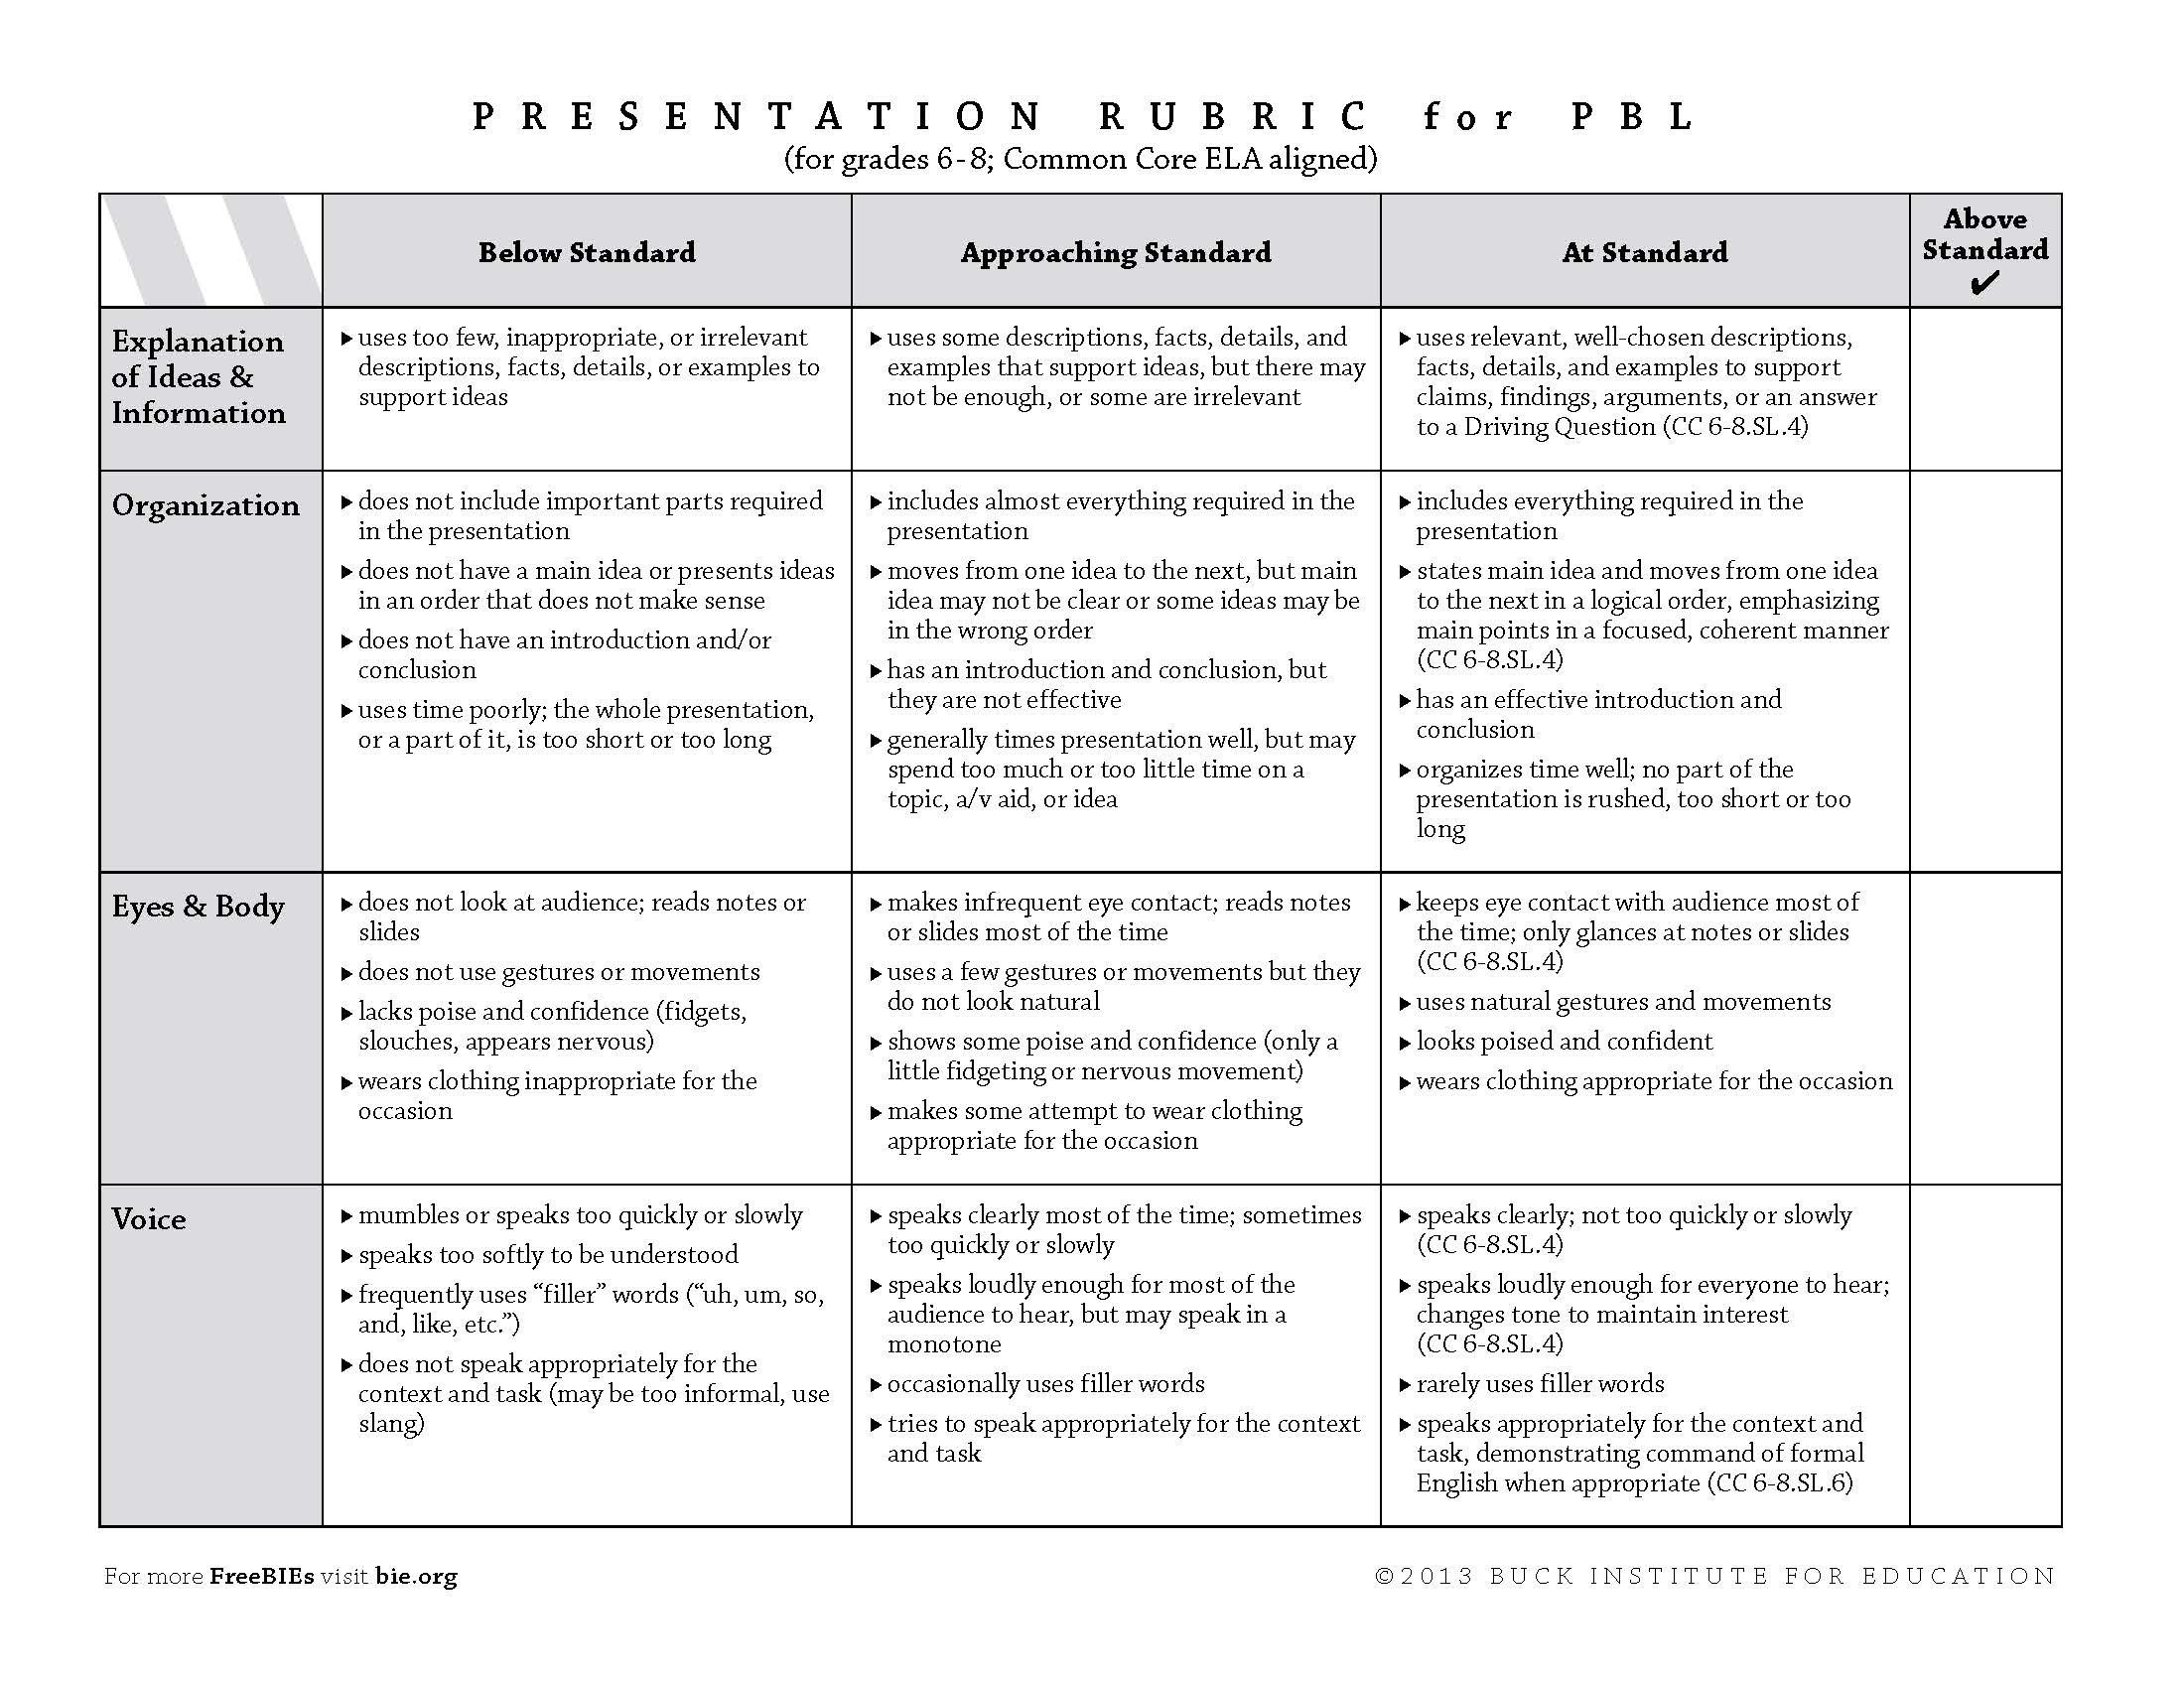 Science Project Rubric Template Pbl Presentation Rubric Ela Mon Core Reading